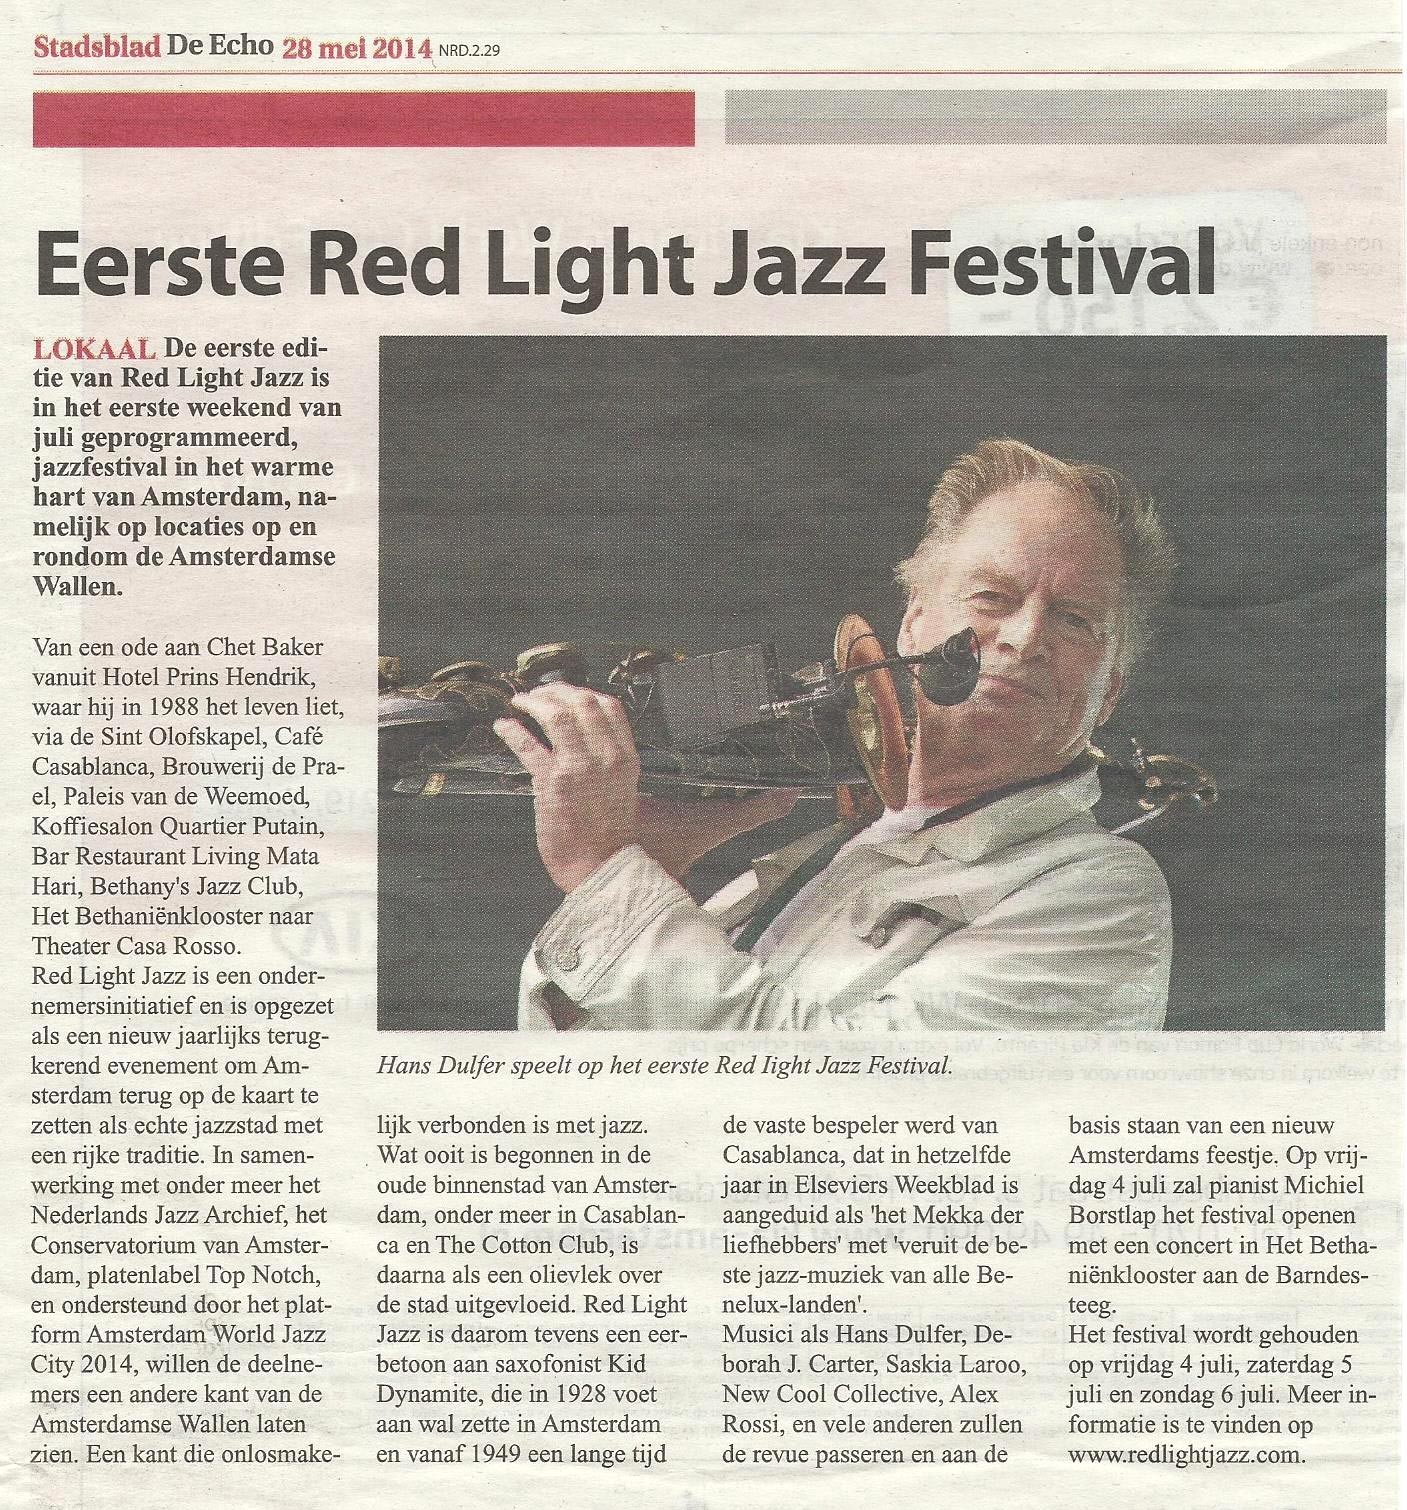 RLJ-Echo-Eerste-Red-Light-Jazz-Festival-2014